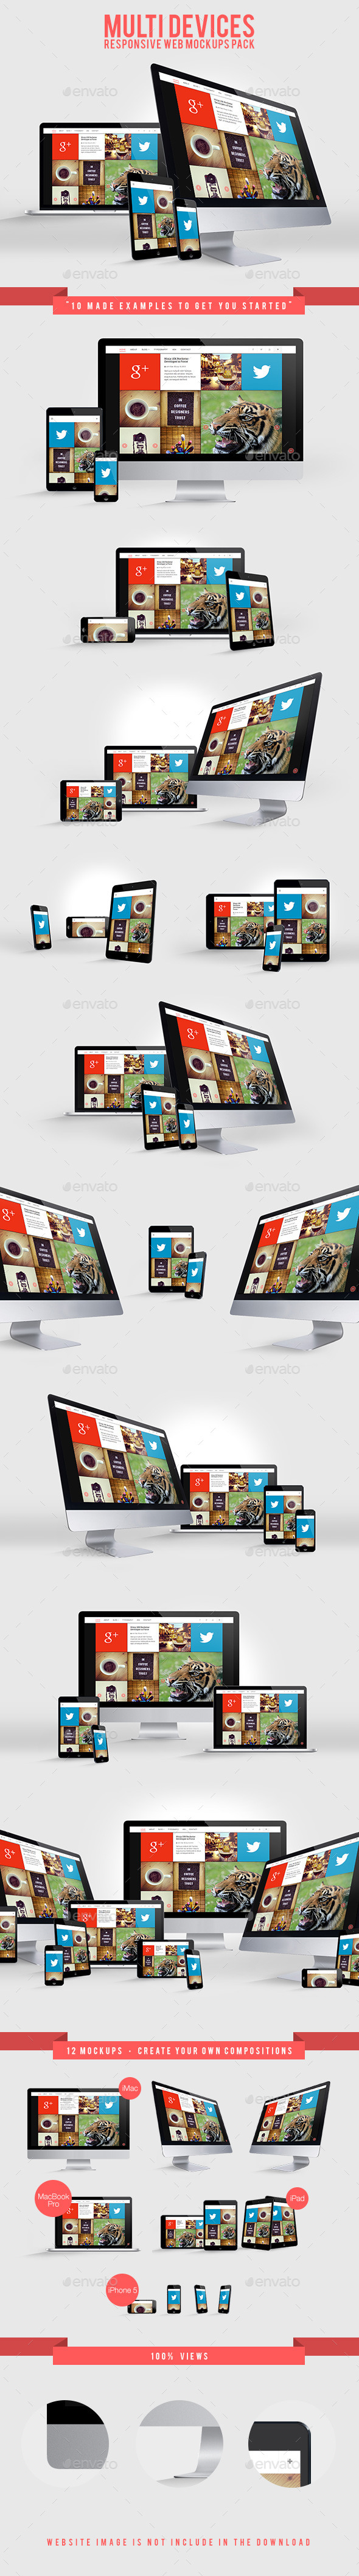 multi-devices-responsive-web-mockups-pack-preview